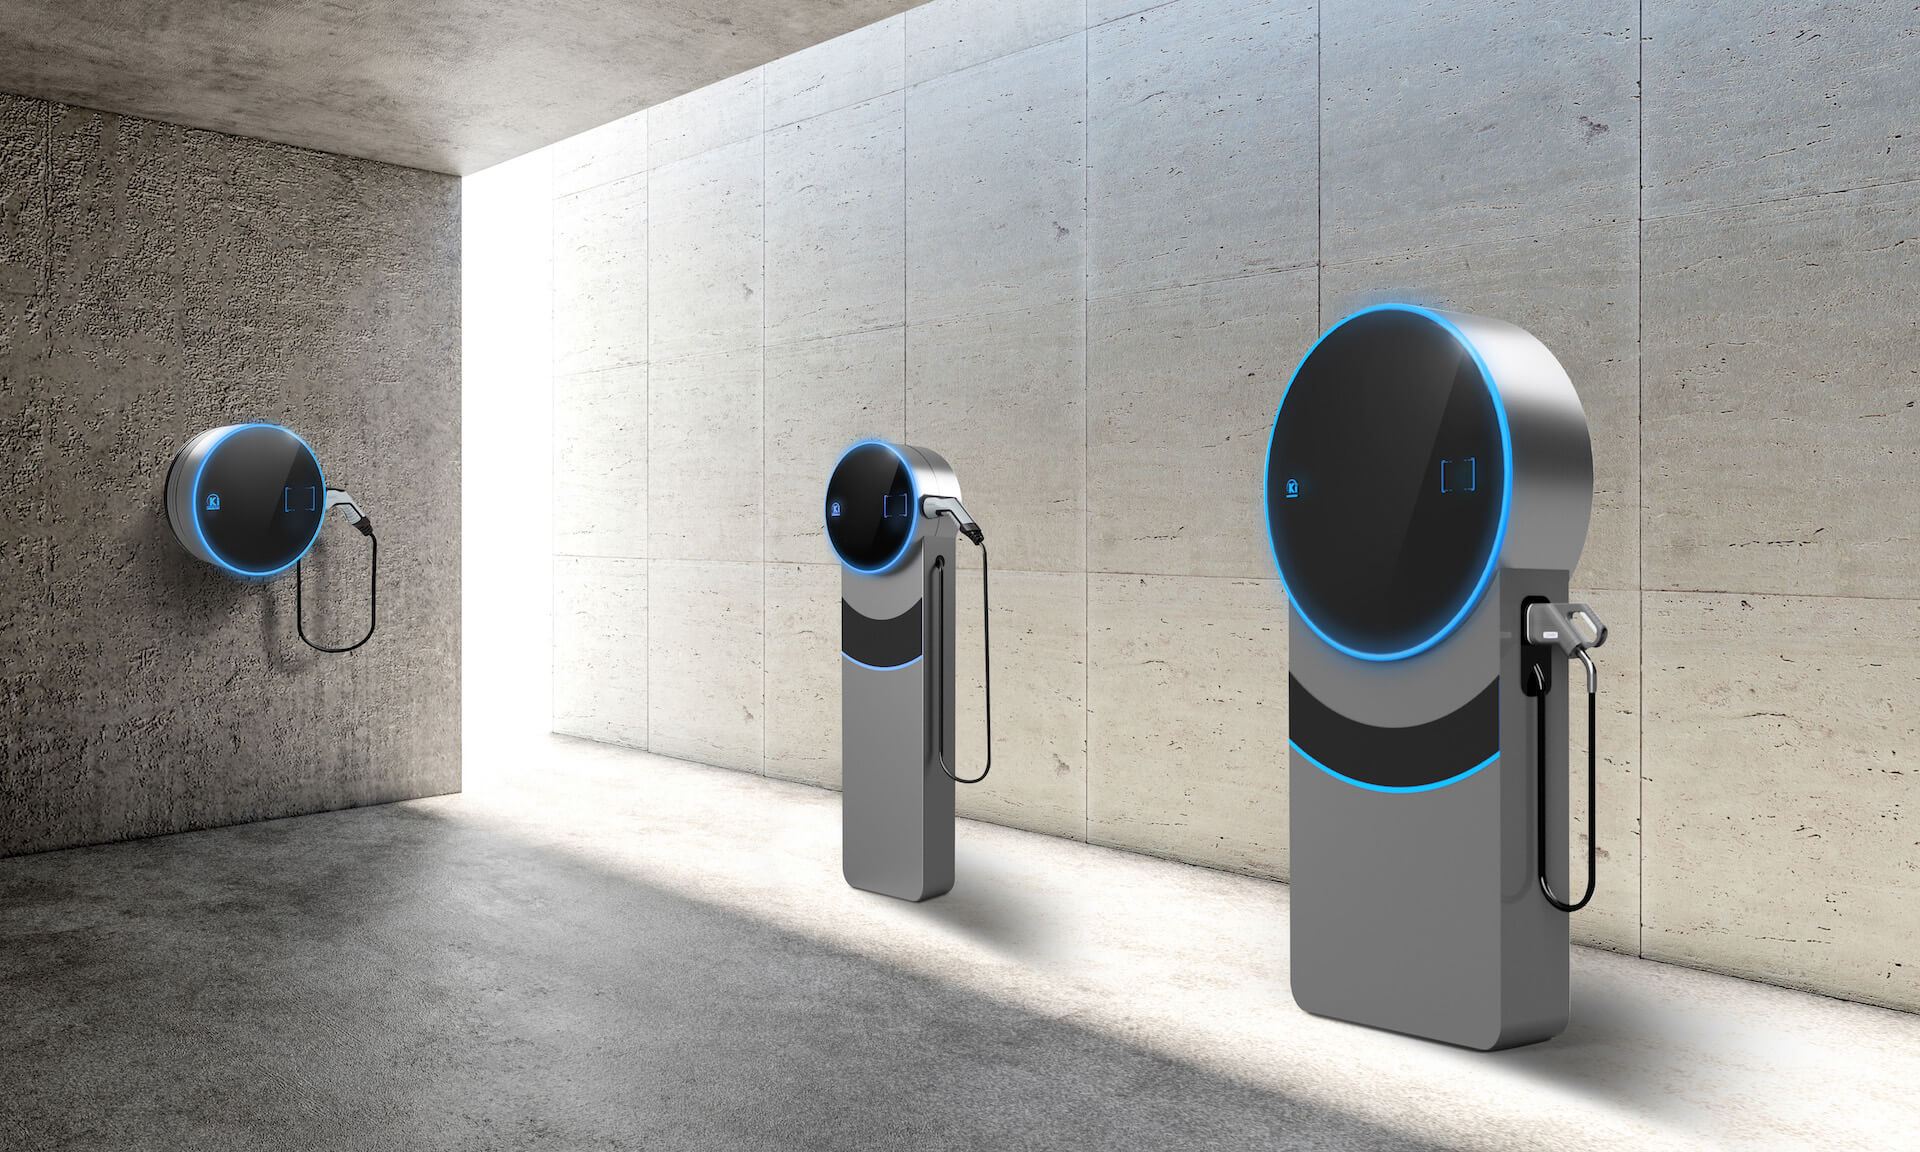 Kinetos product portfolio with wallboxes and charging stations for all for all electric vehicle classes and purposes